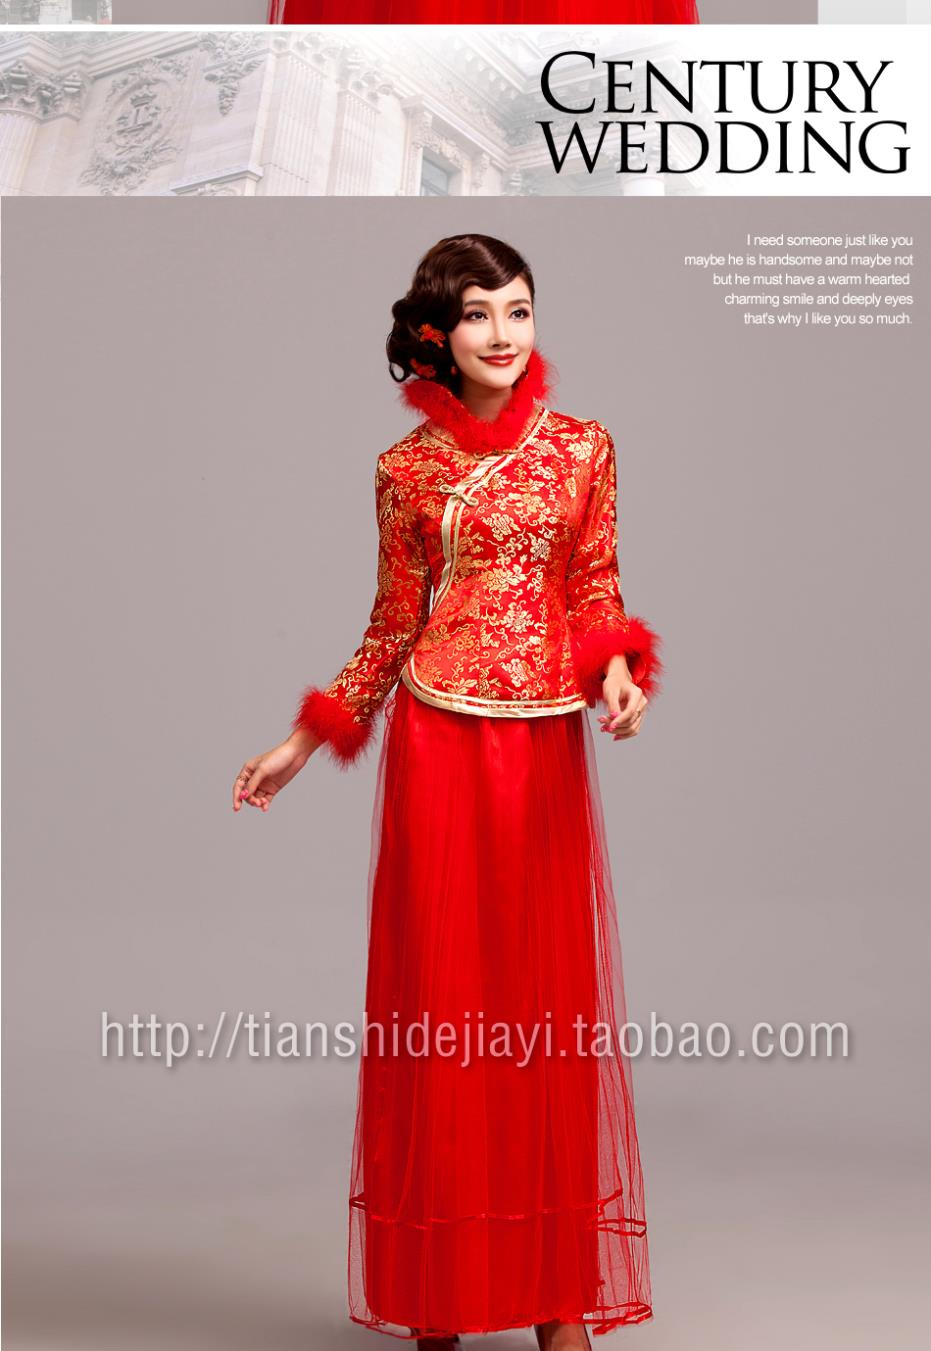 dresses dress up suppliers on angel wedding dress wholesale dress